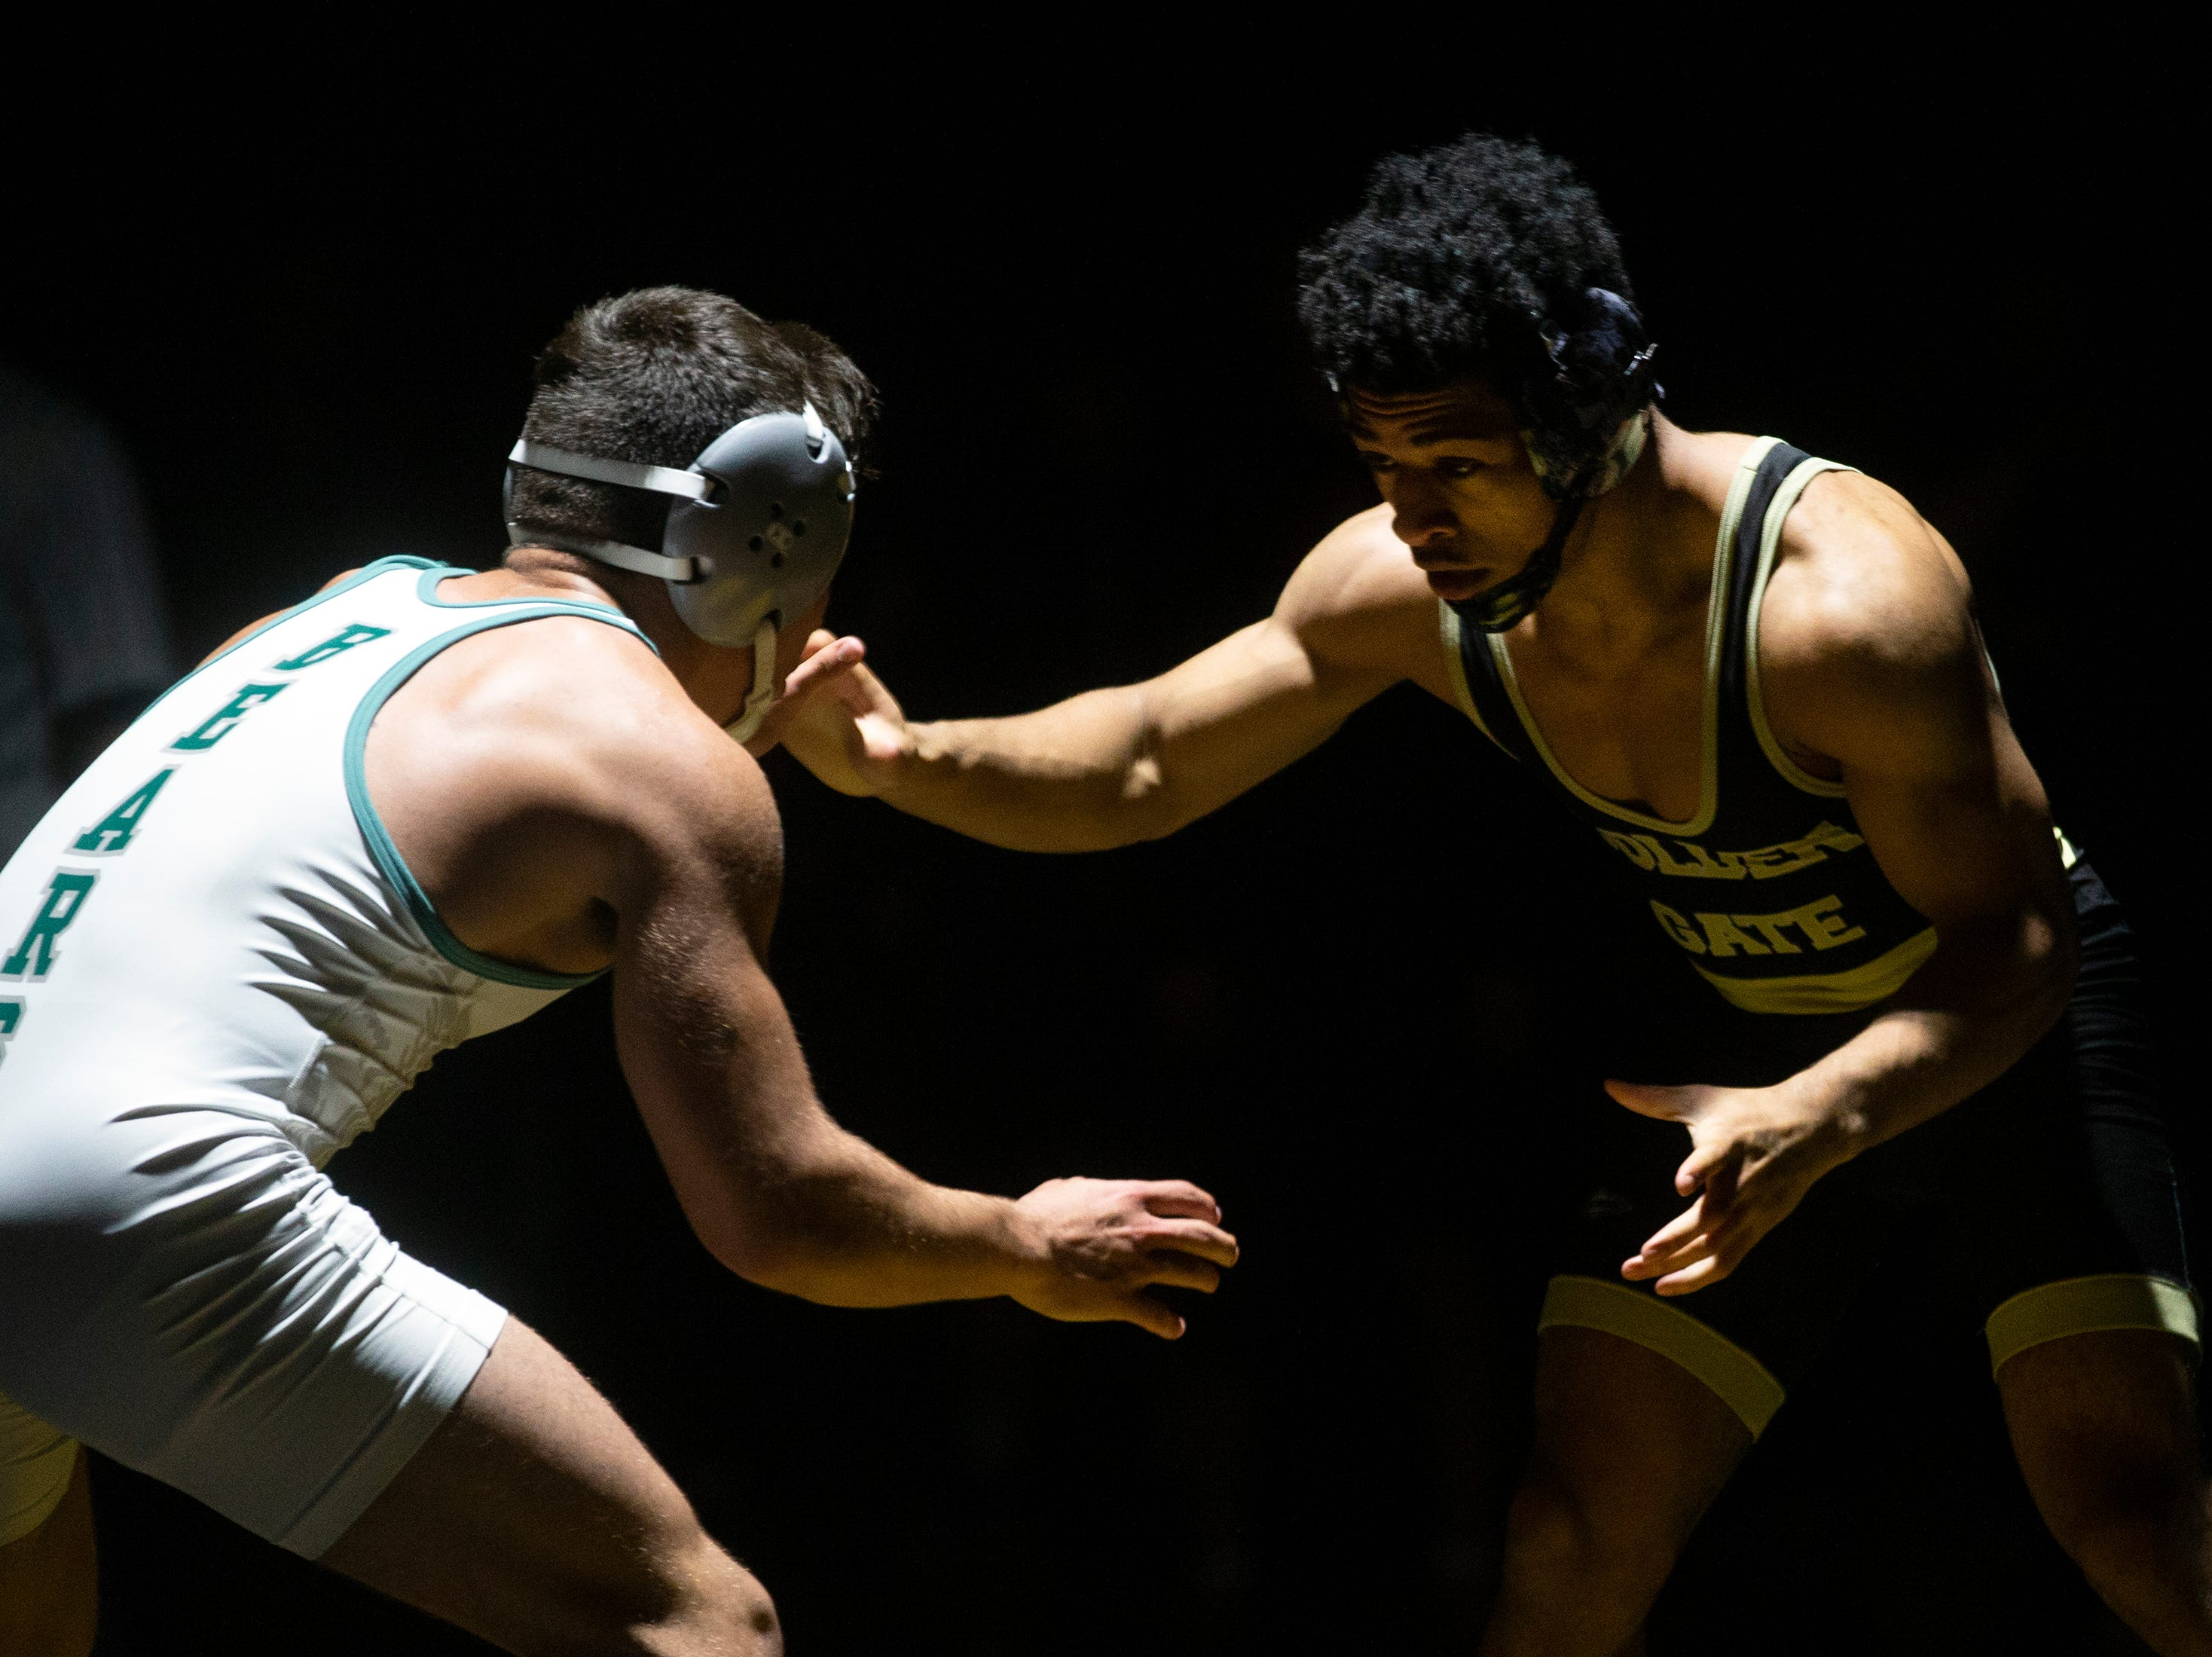 Golden Gate High School's Gerald Roger Palmetto Ridge High School's Adrian Ayala in the 132-pound match up during the Collier County Athletic Conference wrestling championship, Wednesday, Jan. 9, 2018, at Naples High School.